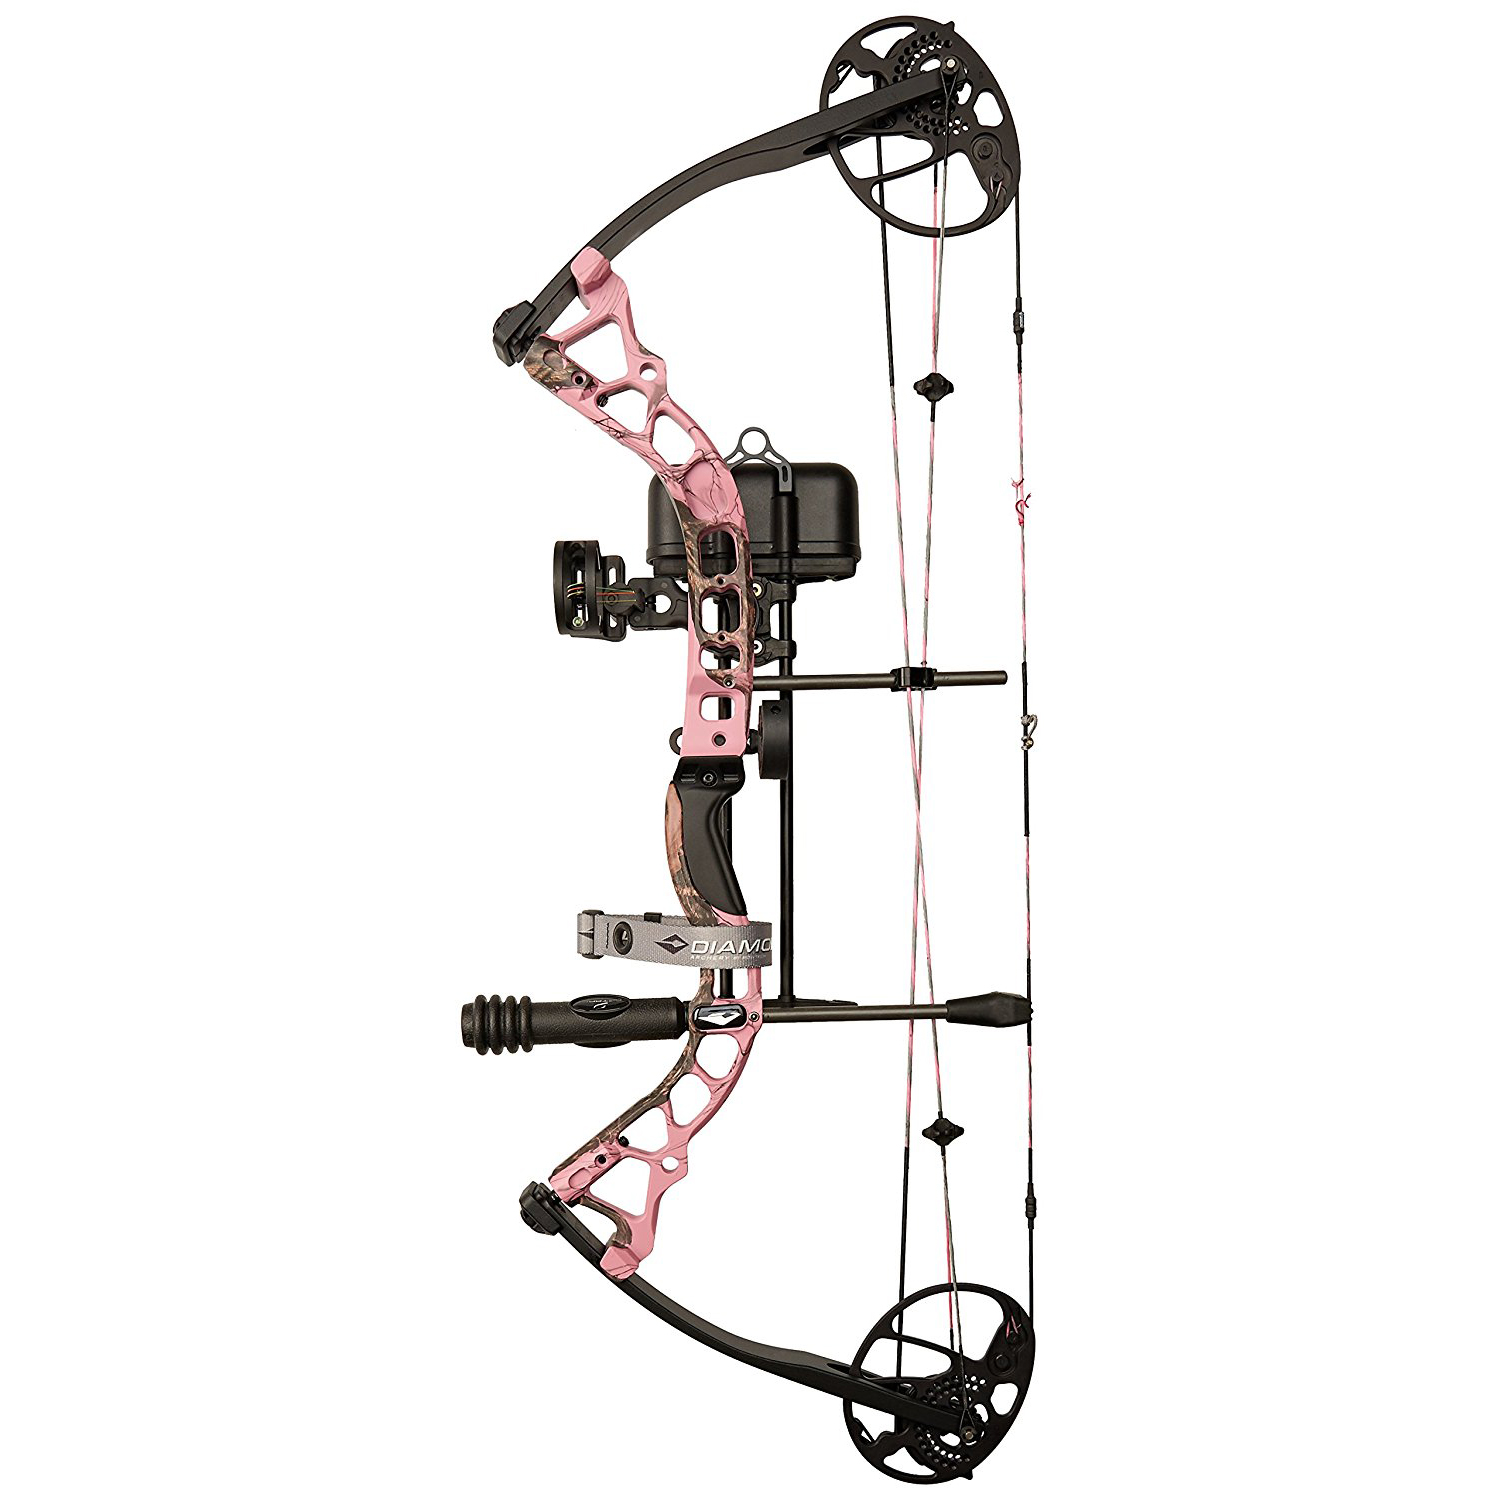 Details about Diamond Archery Infinite Edge Pro Rh 5-70 Right Hand Compound  Bow, Pink W/Pkg